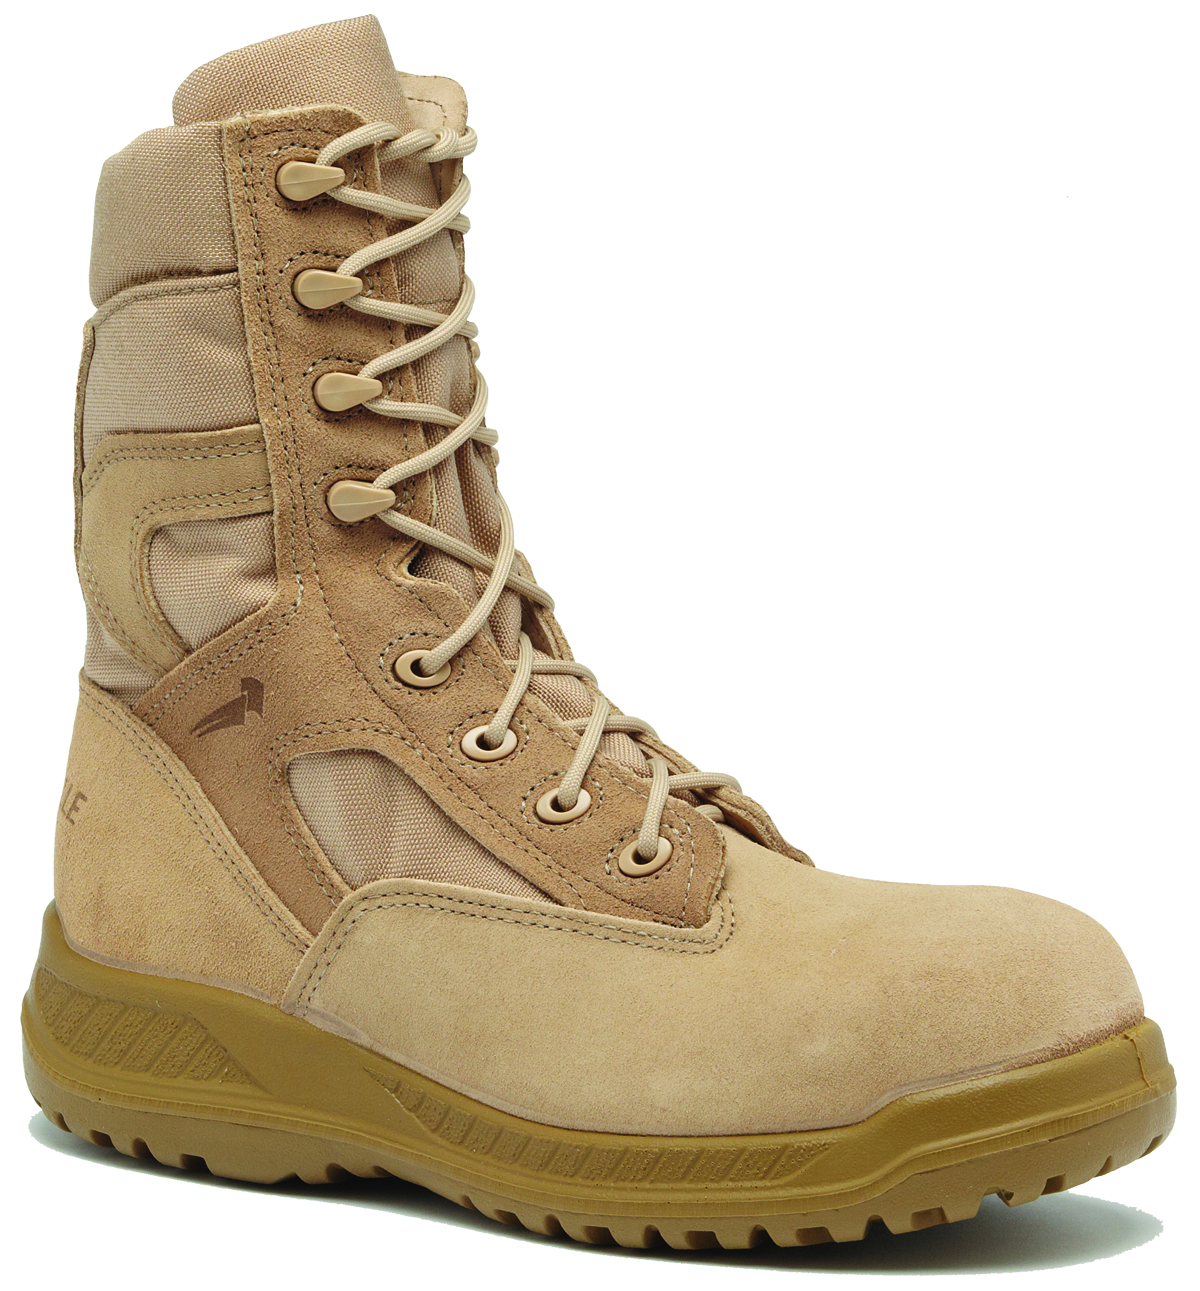 Berry Compliant Combat Boots on Sale at Cheap Discount Prices